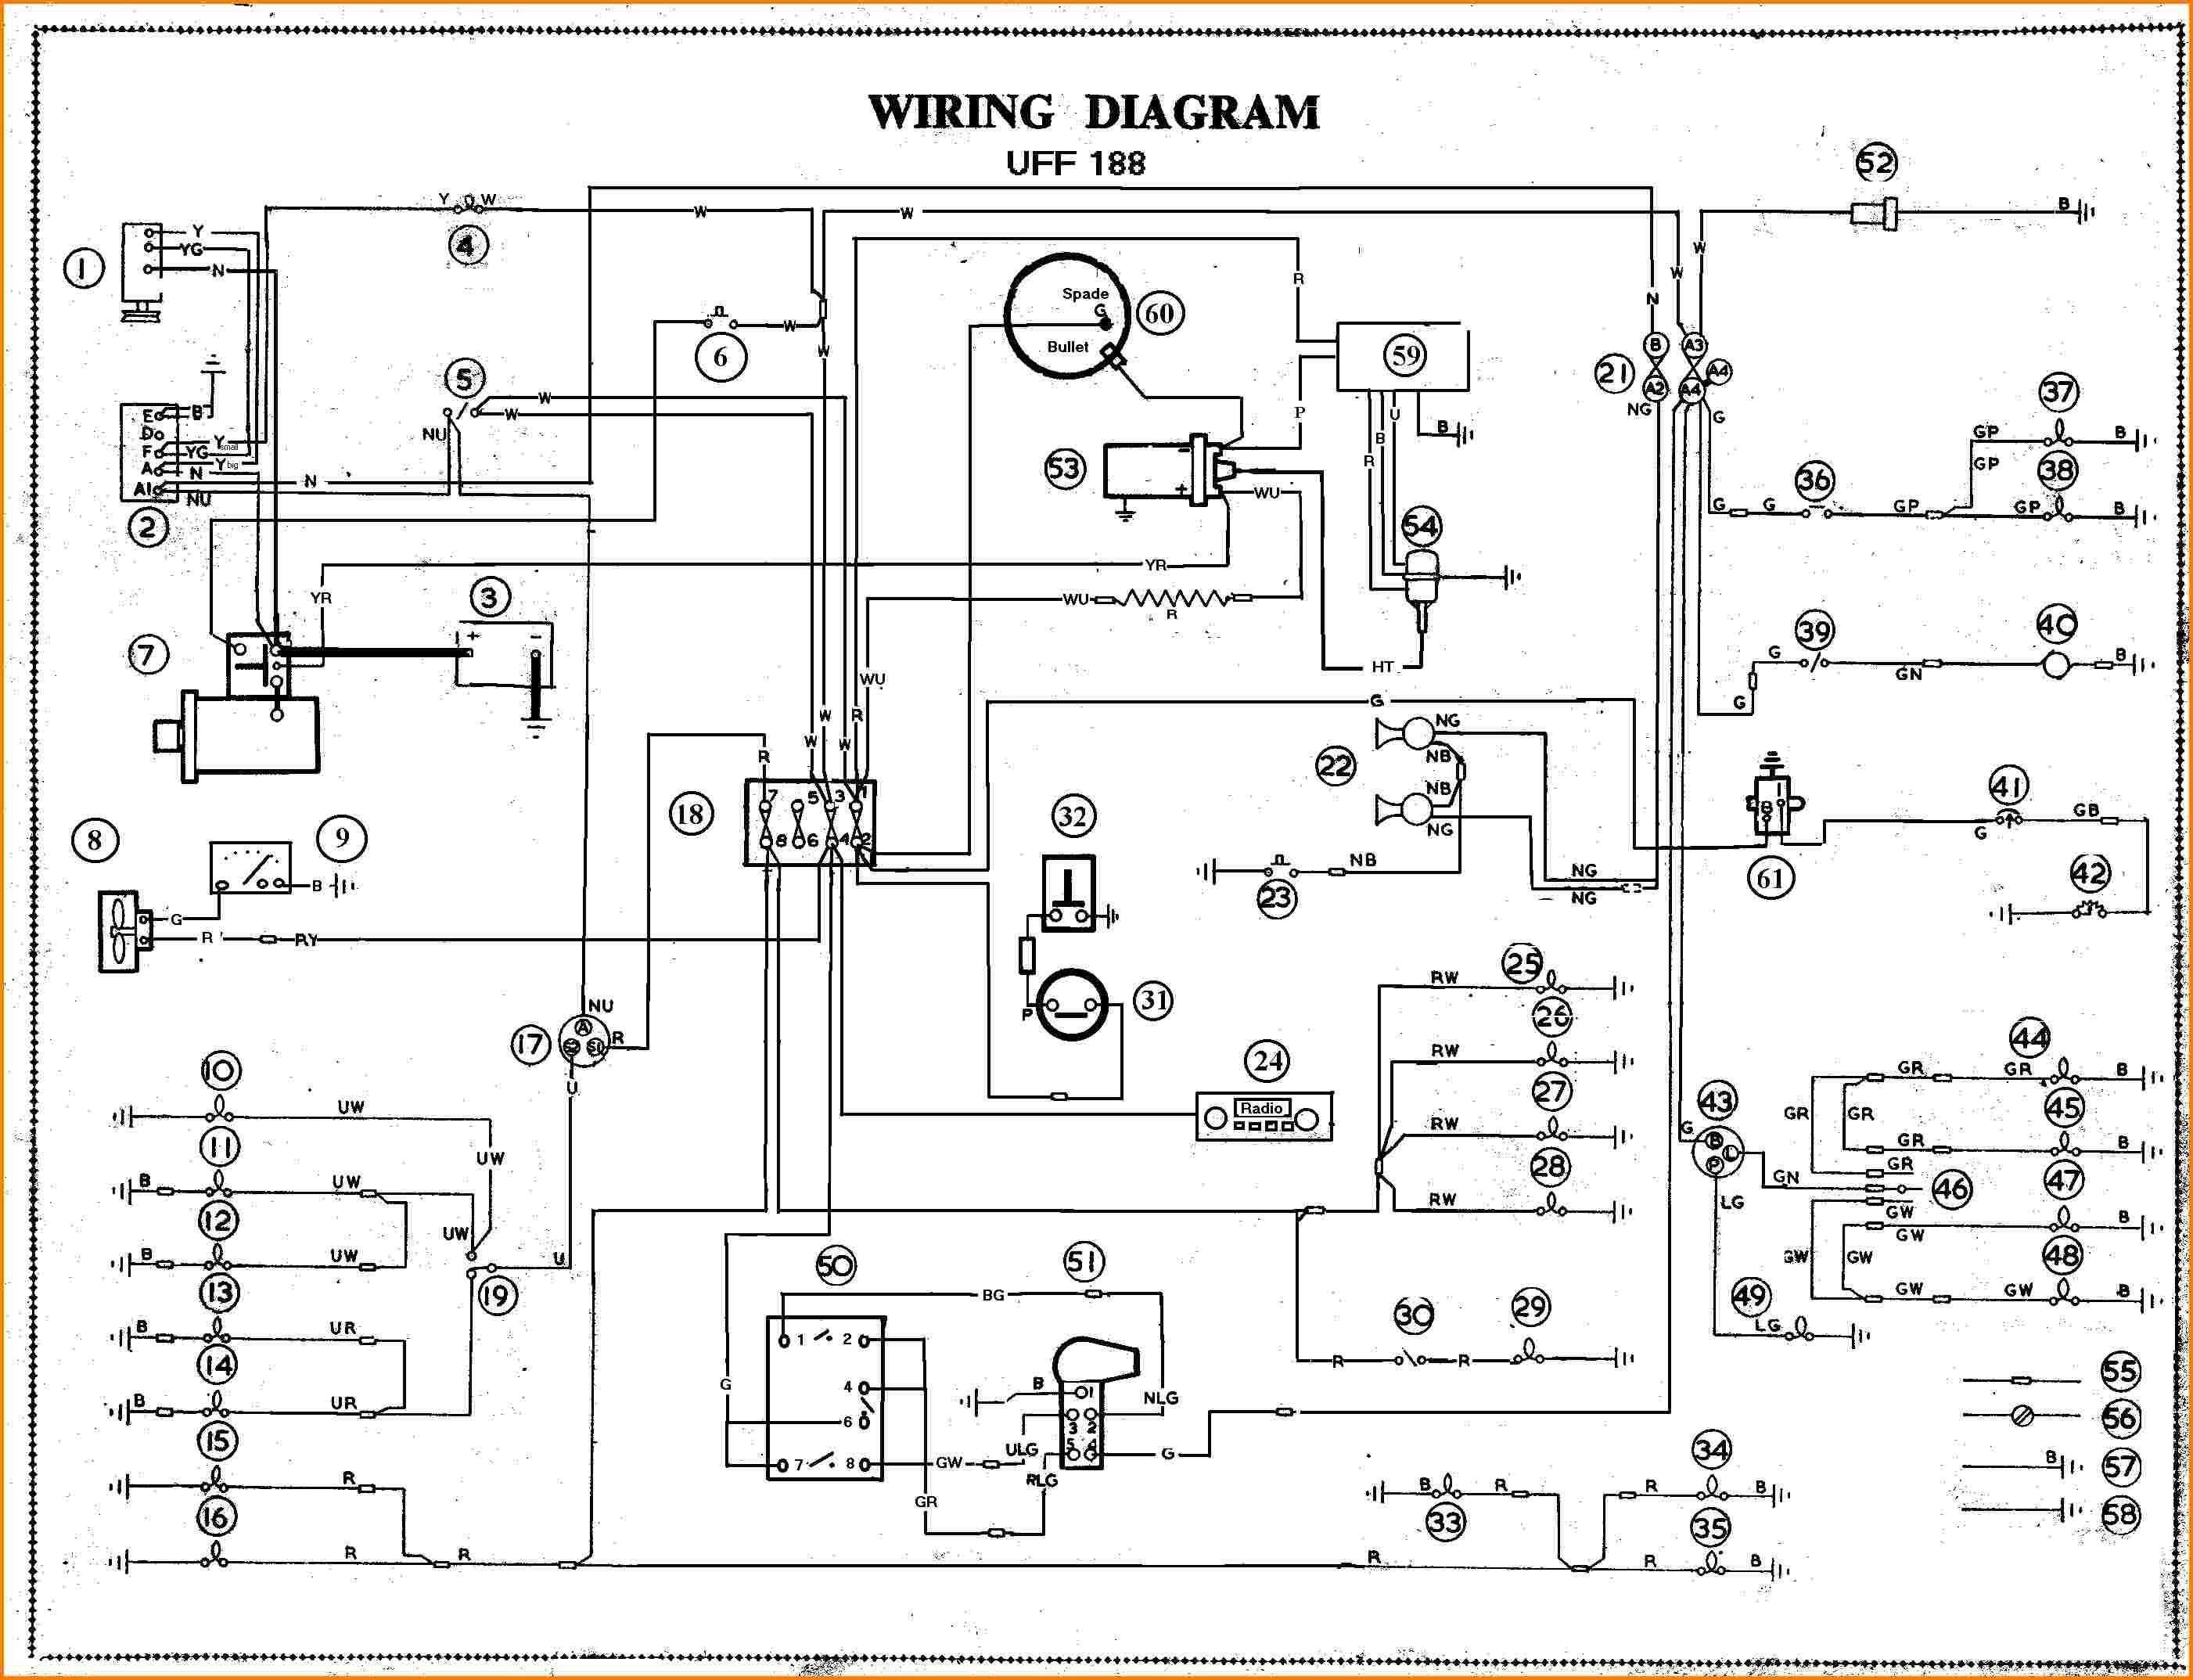 electric wiring diagram maker